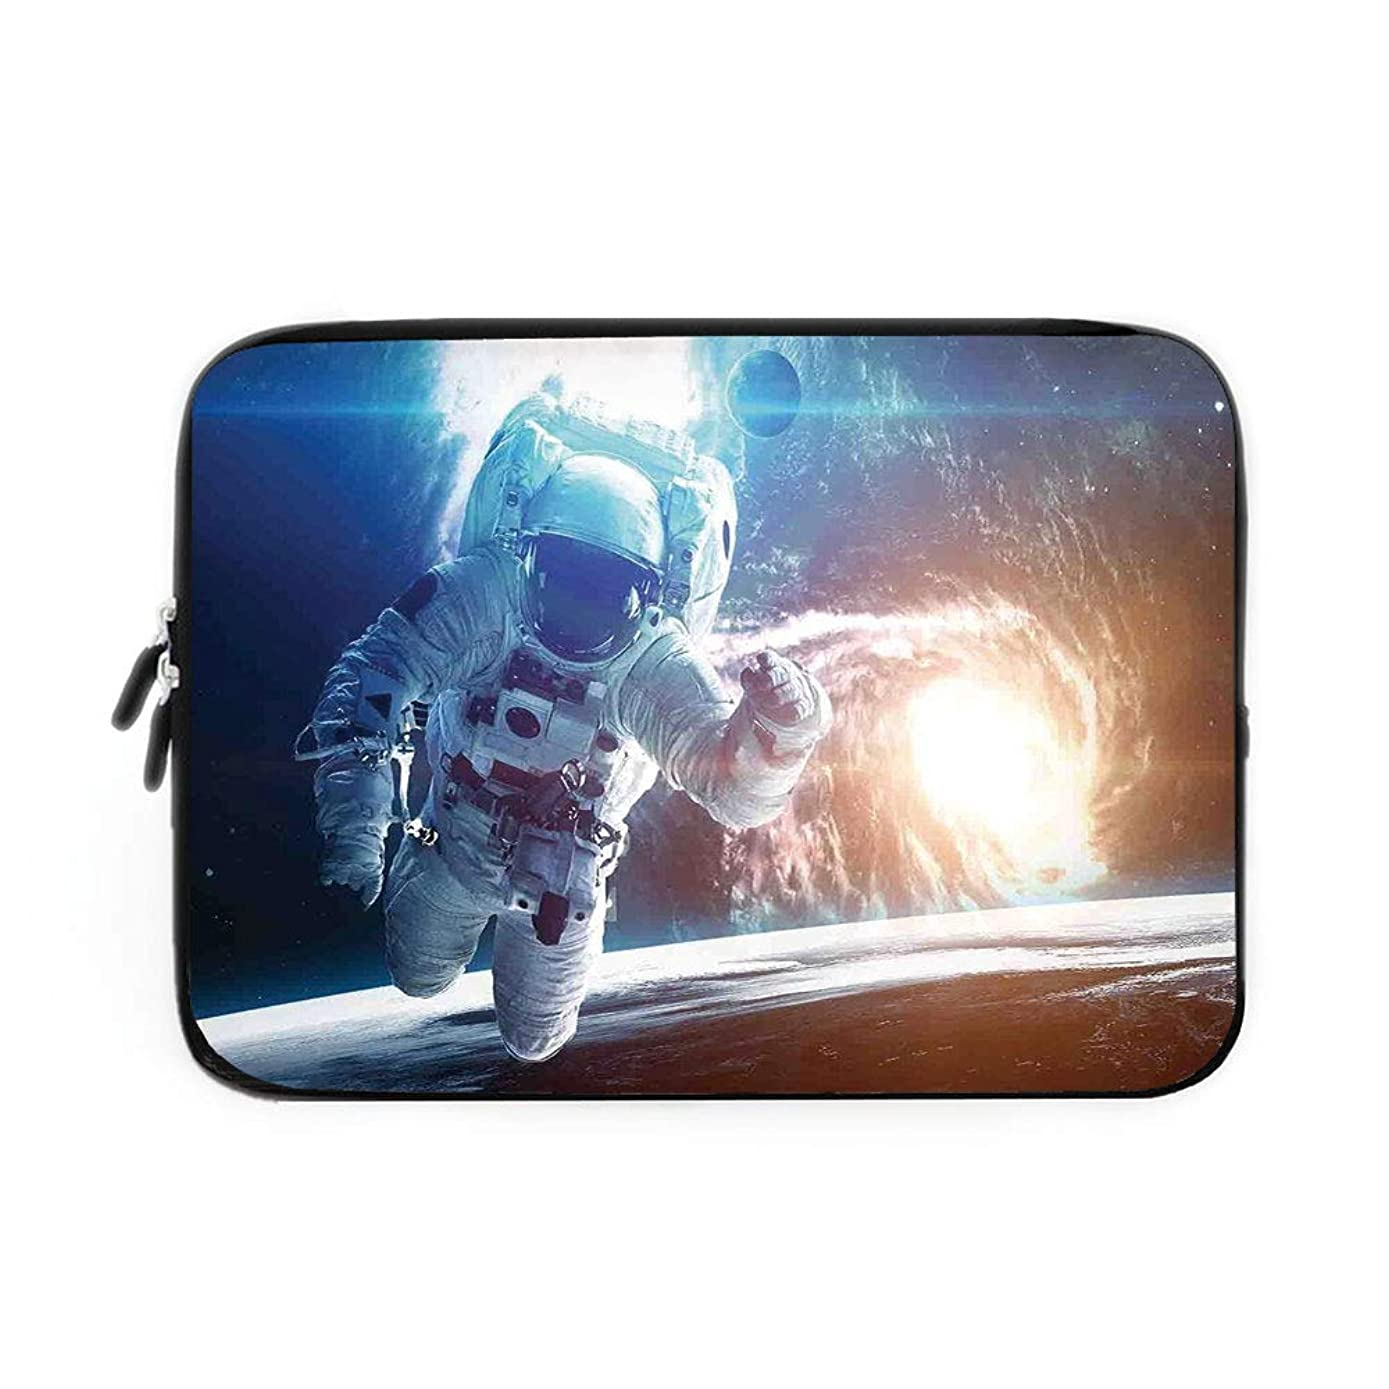 Outer Space Decor Laptop Sleeve Bag,Neoprene Sleeve Case/Spaceman in Galaxy in Front of Nebula Gas Cloud Interstellar Art Print/for Apple MacBook Air Samsung Google Acer HP DELL Lenovo AsusBl